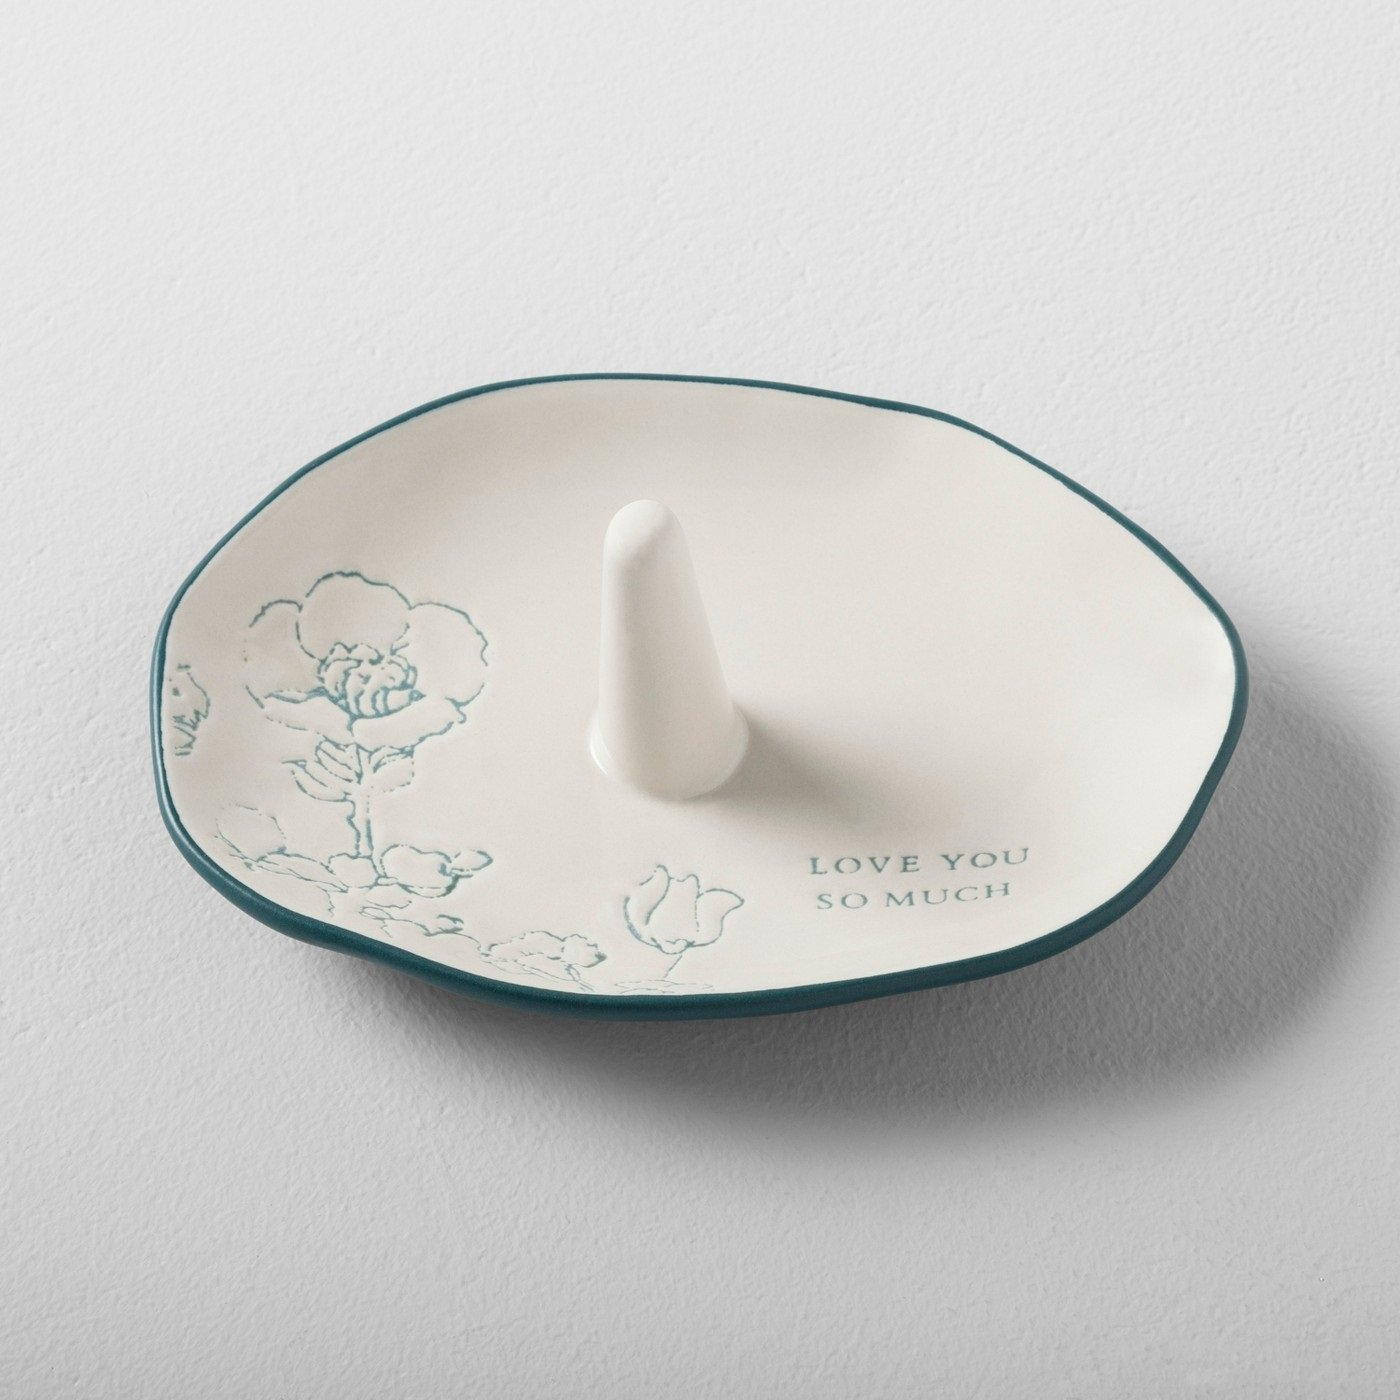 Hearth and Hand Magnolia Ring Tray Stoneware Cream Love Mother Day Collection by Hearth & Hand Magnolia (Image #3)